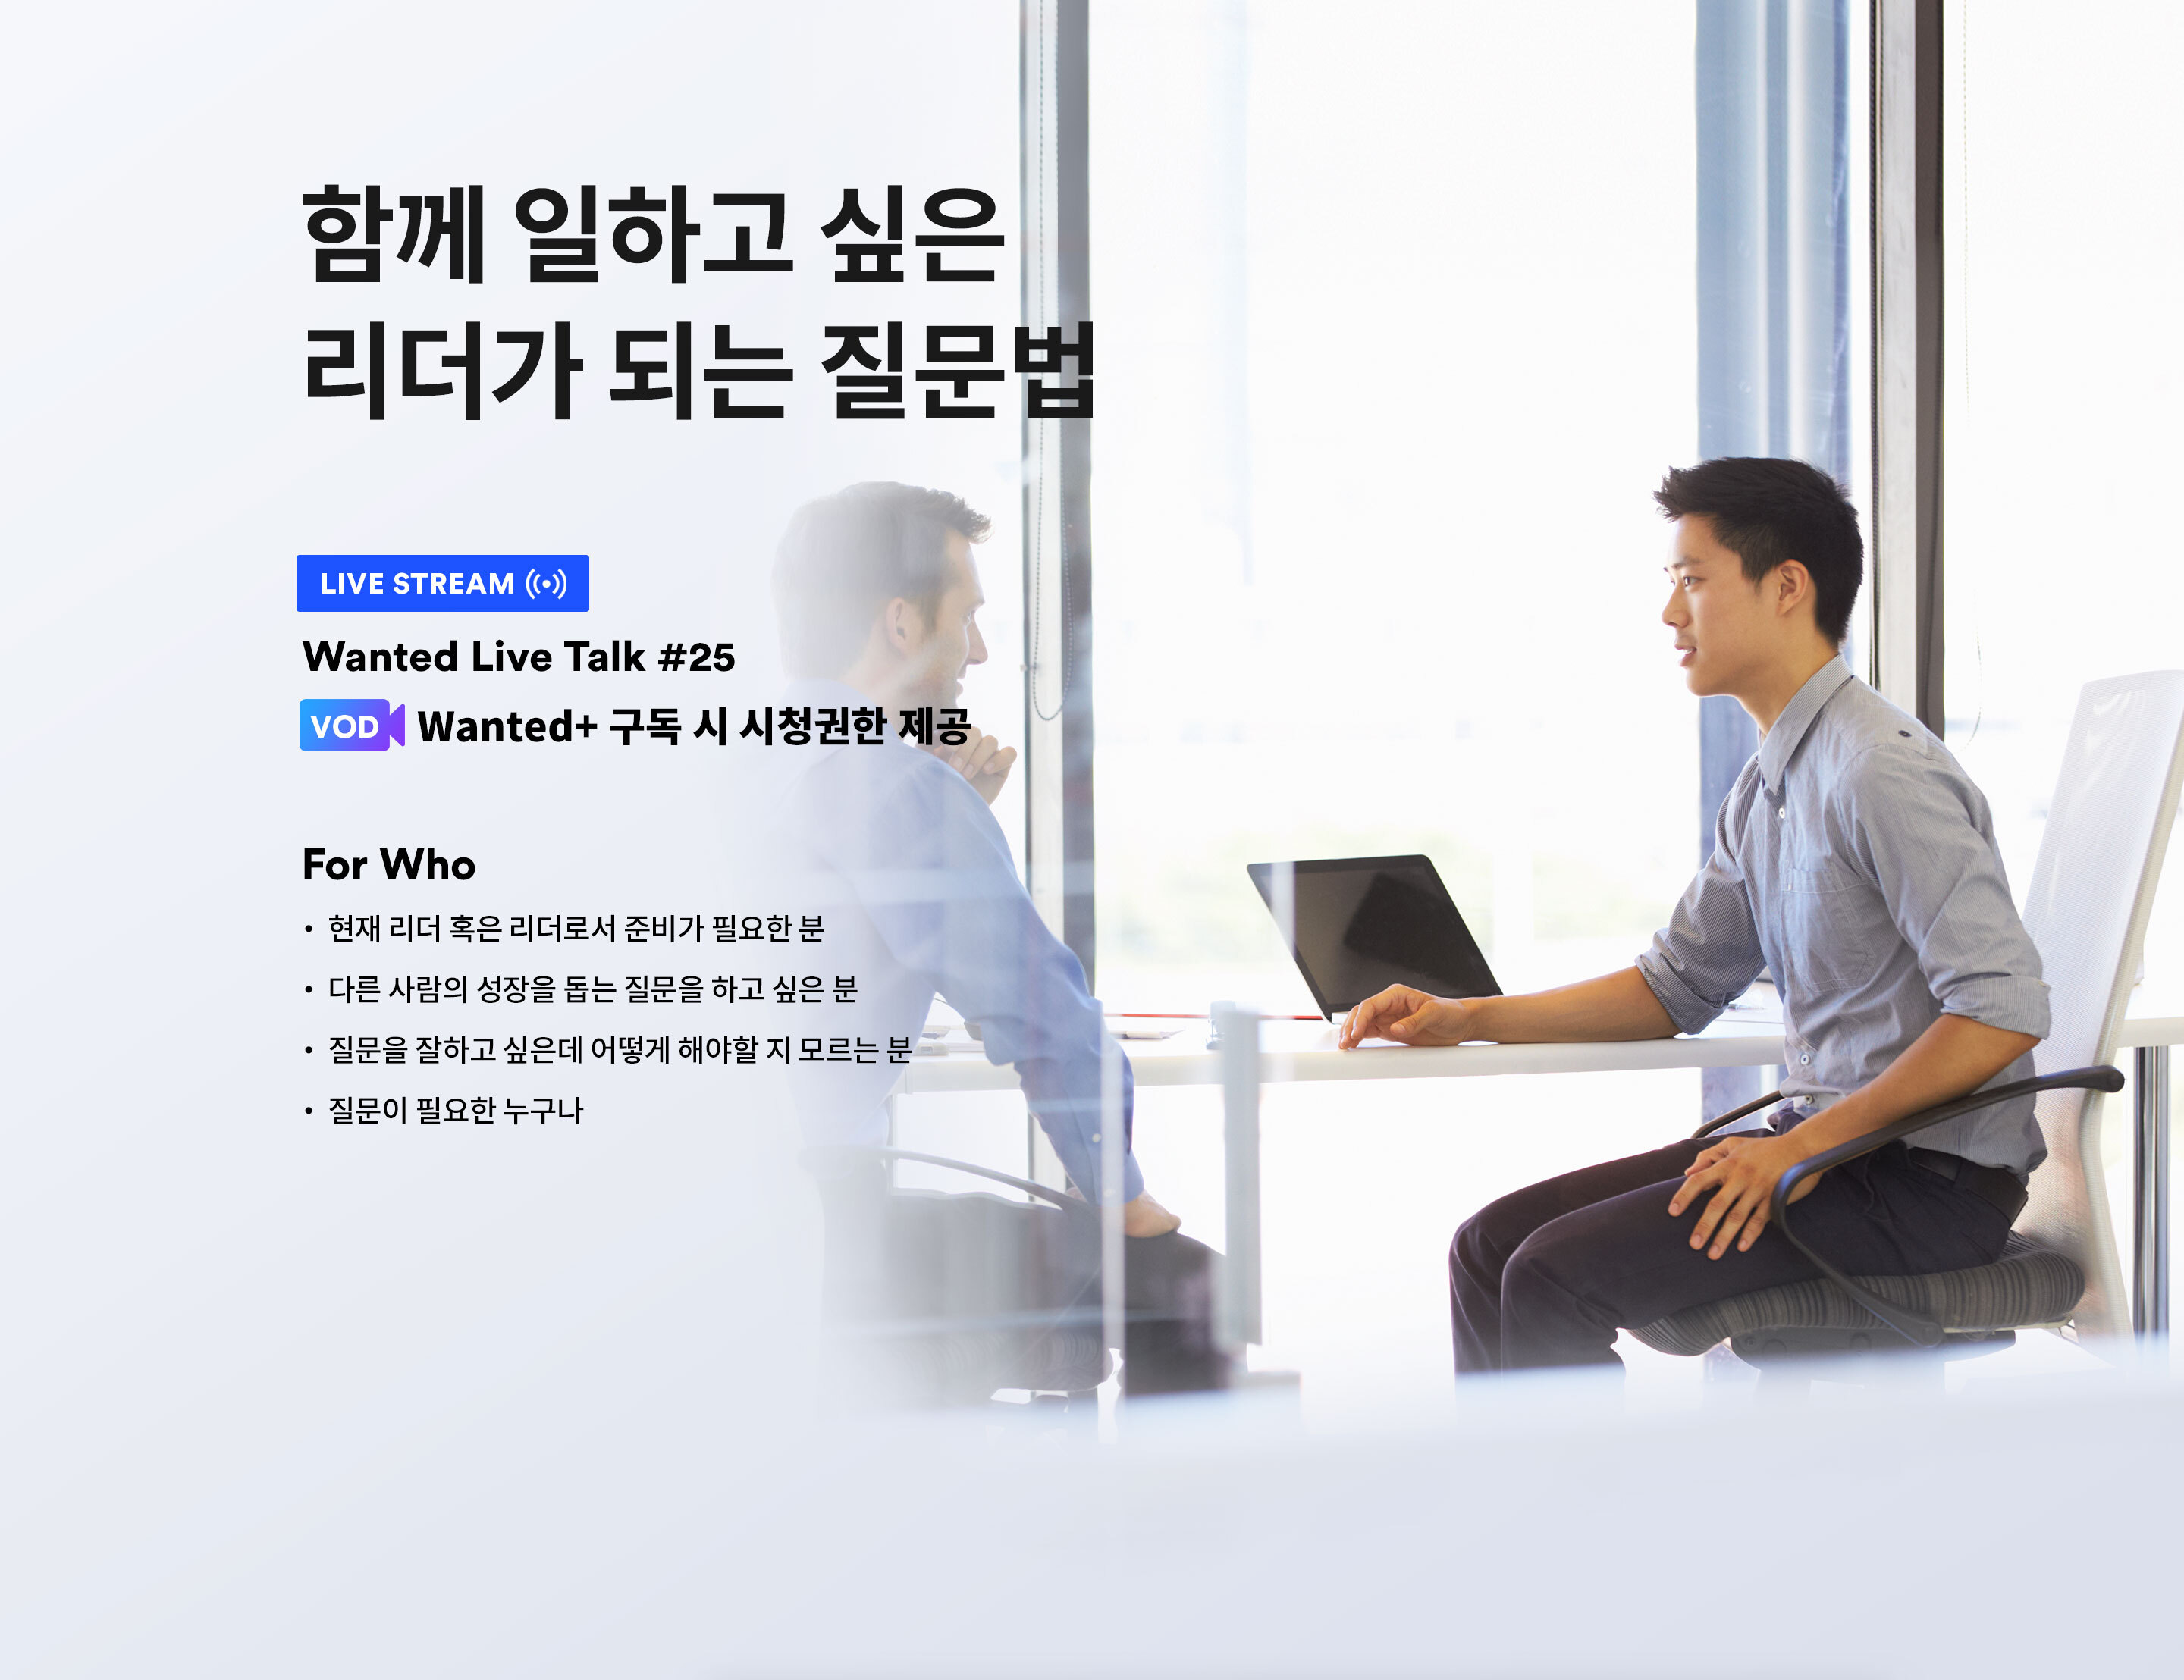 https://static.wanted.co.kr/images/events/1235/a6f4b272.jpg